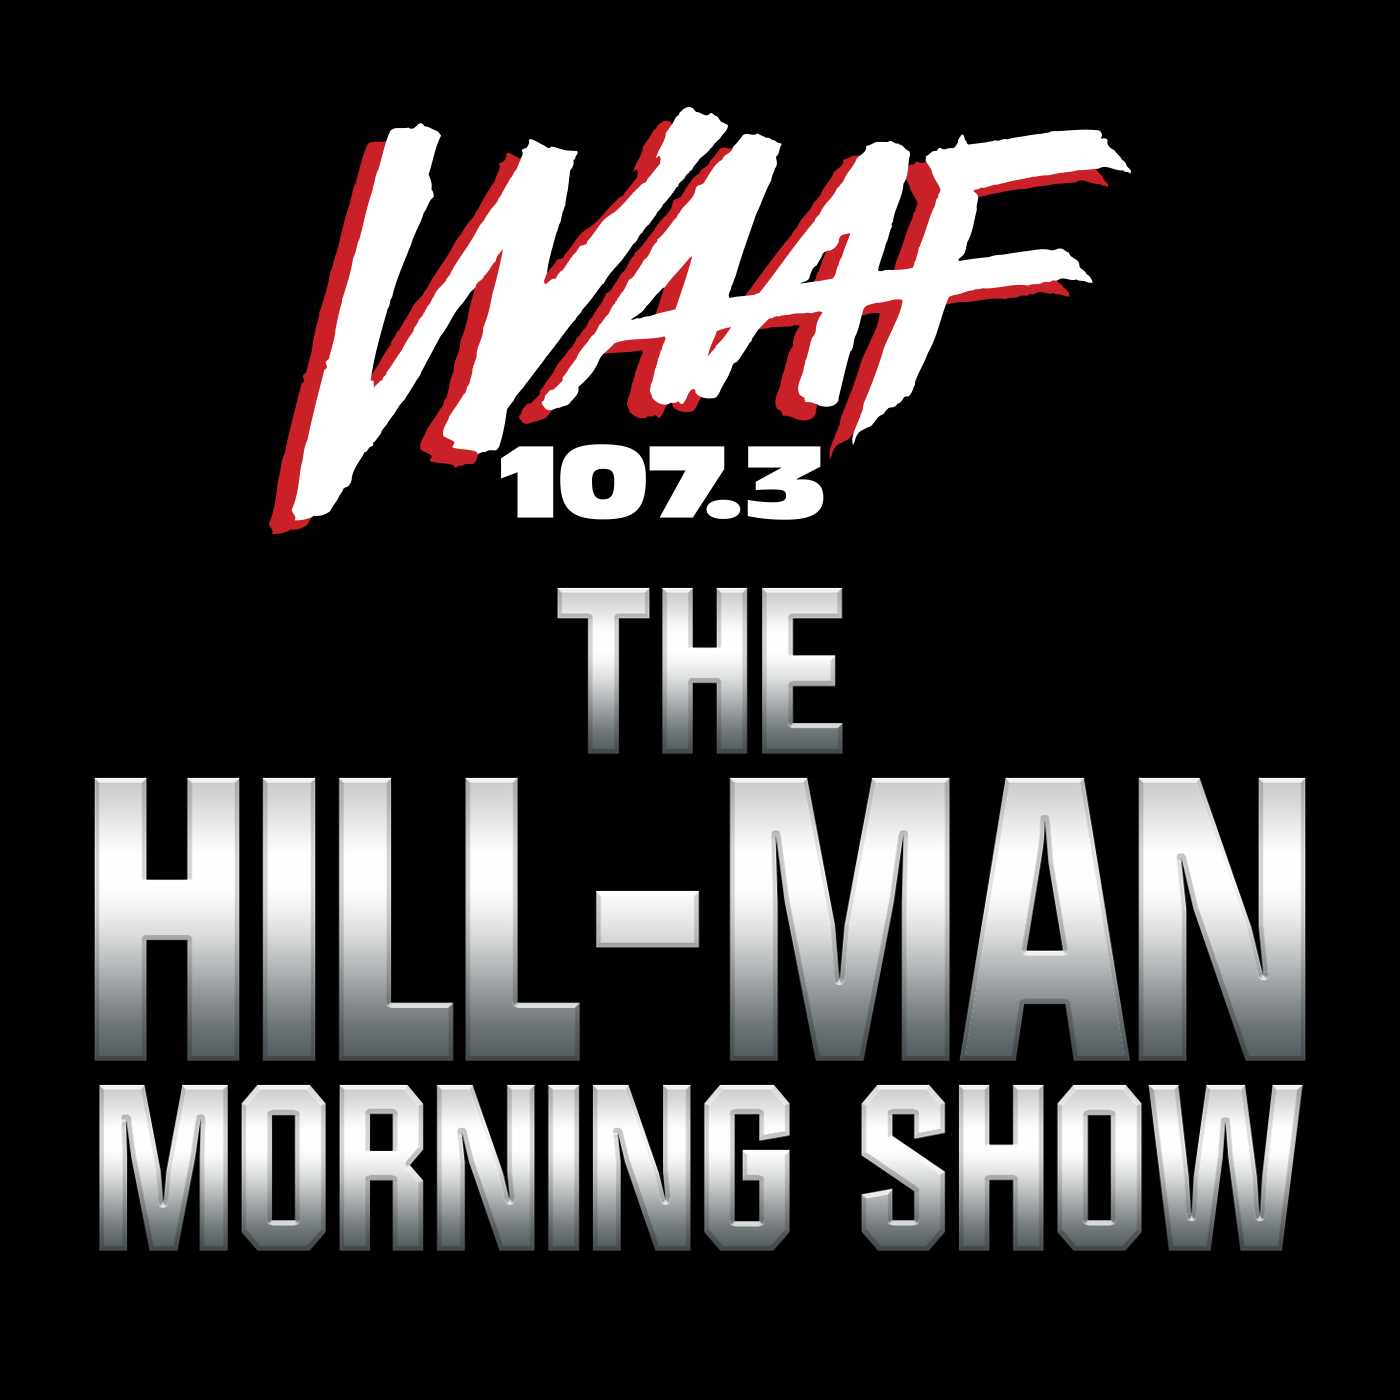 Hill-Man Morning Show Audio